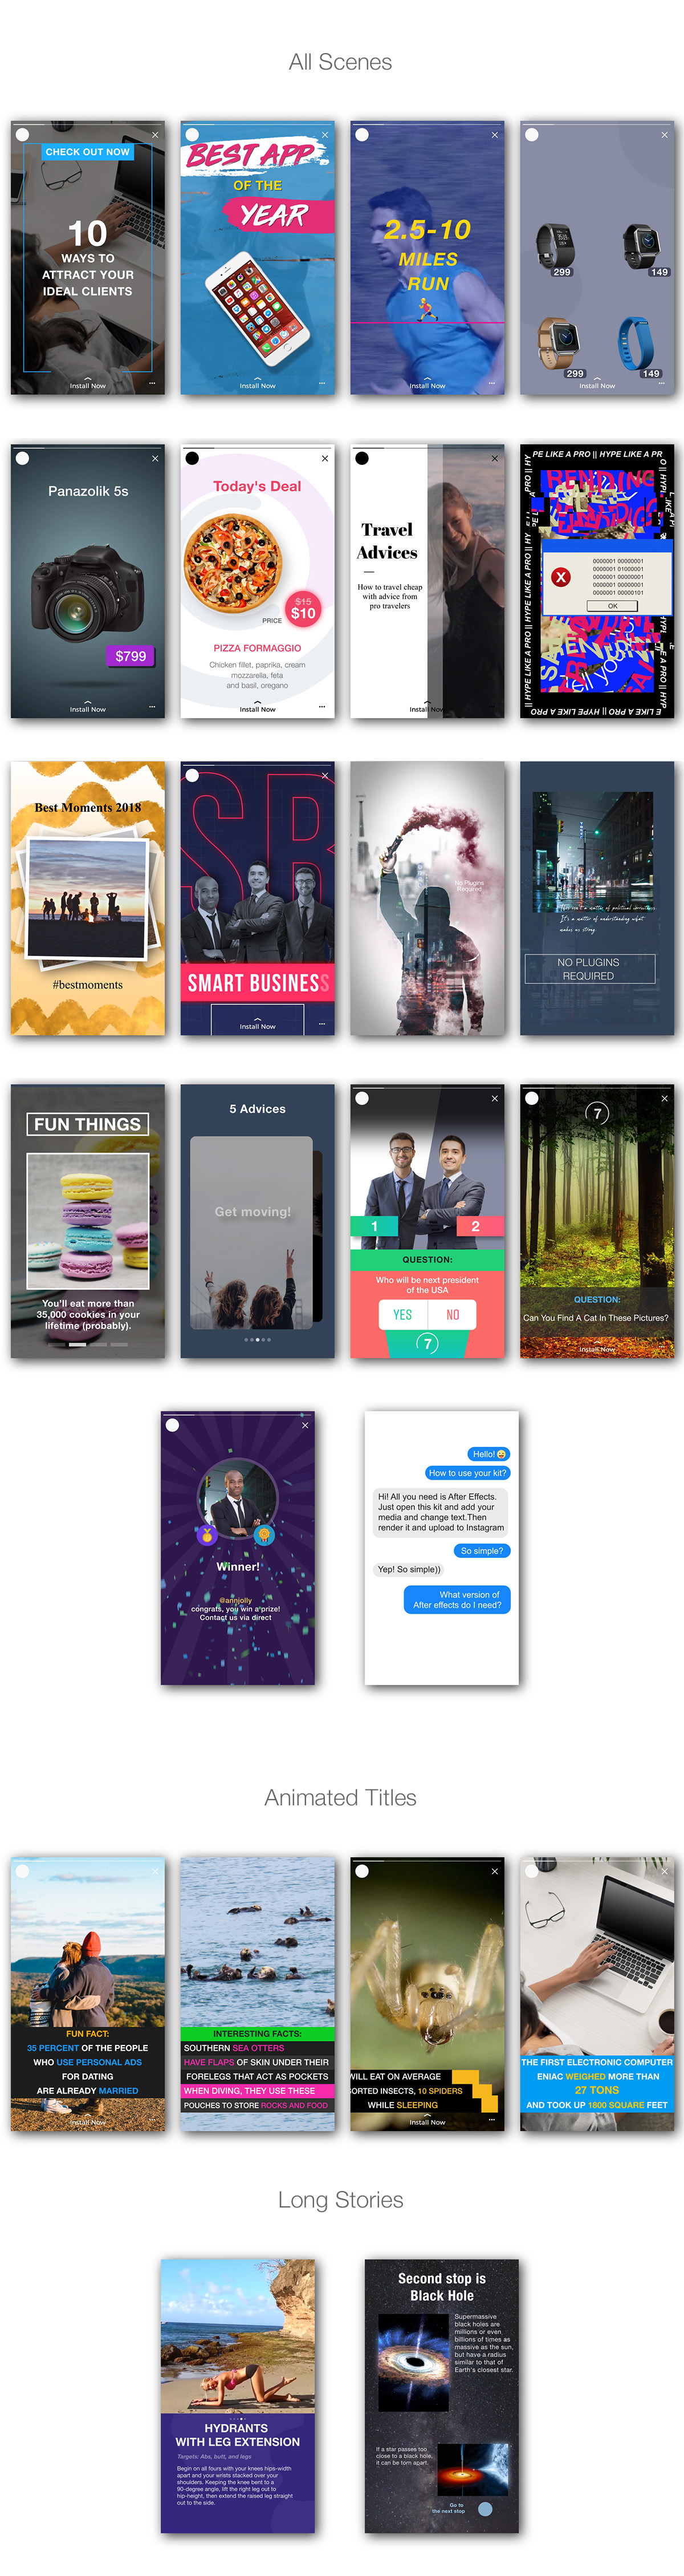 Animated Stories Kit // Instagram, Snapchat, Facebook - 12